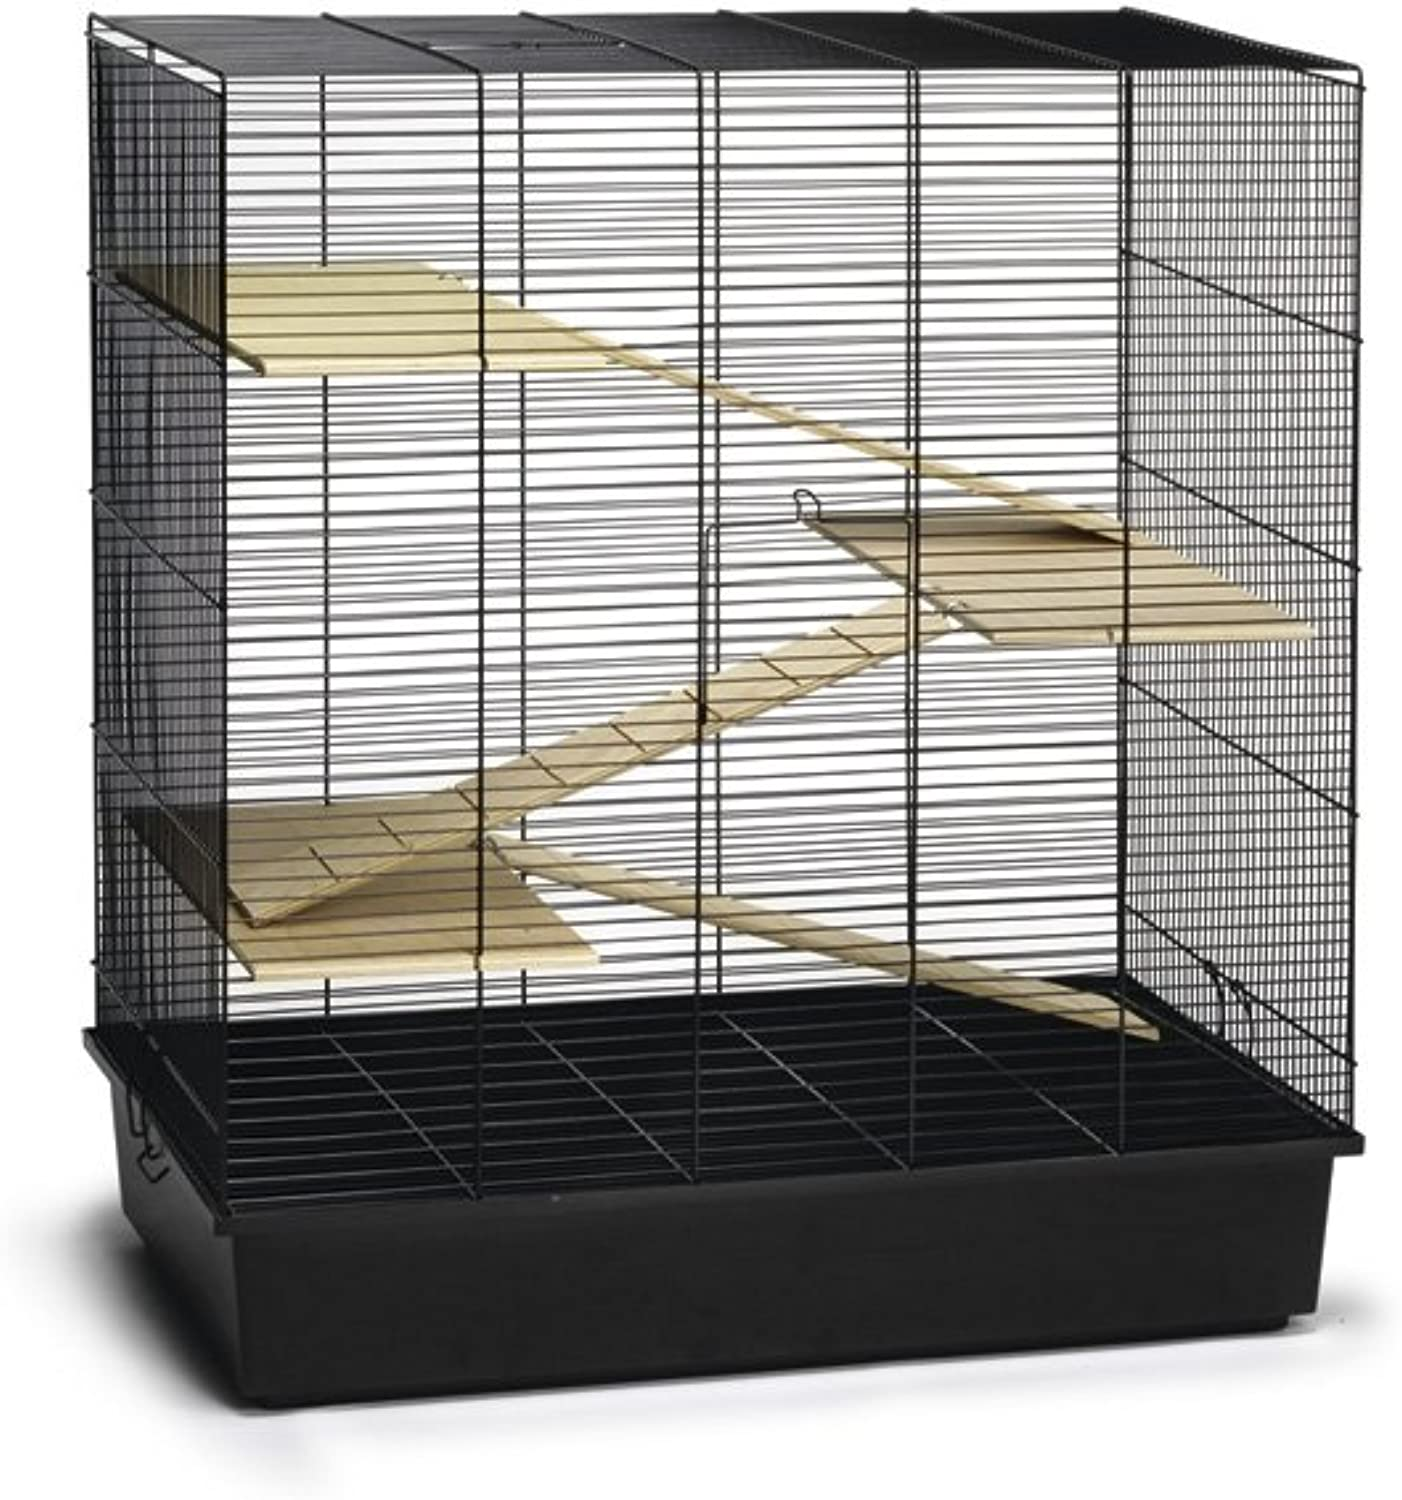 Beeztees Rodent Cage Scooby, 70 x 40 x 78 cm, Black